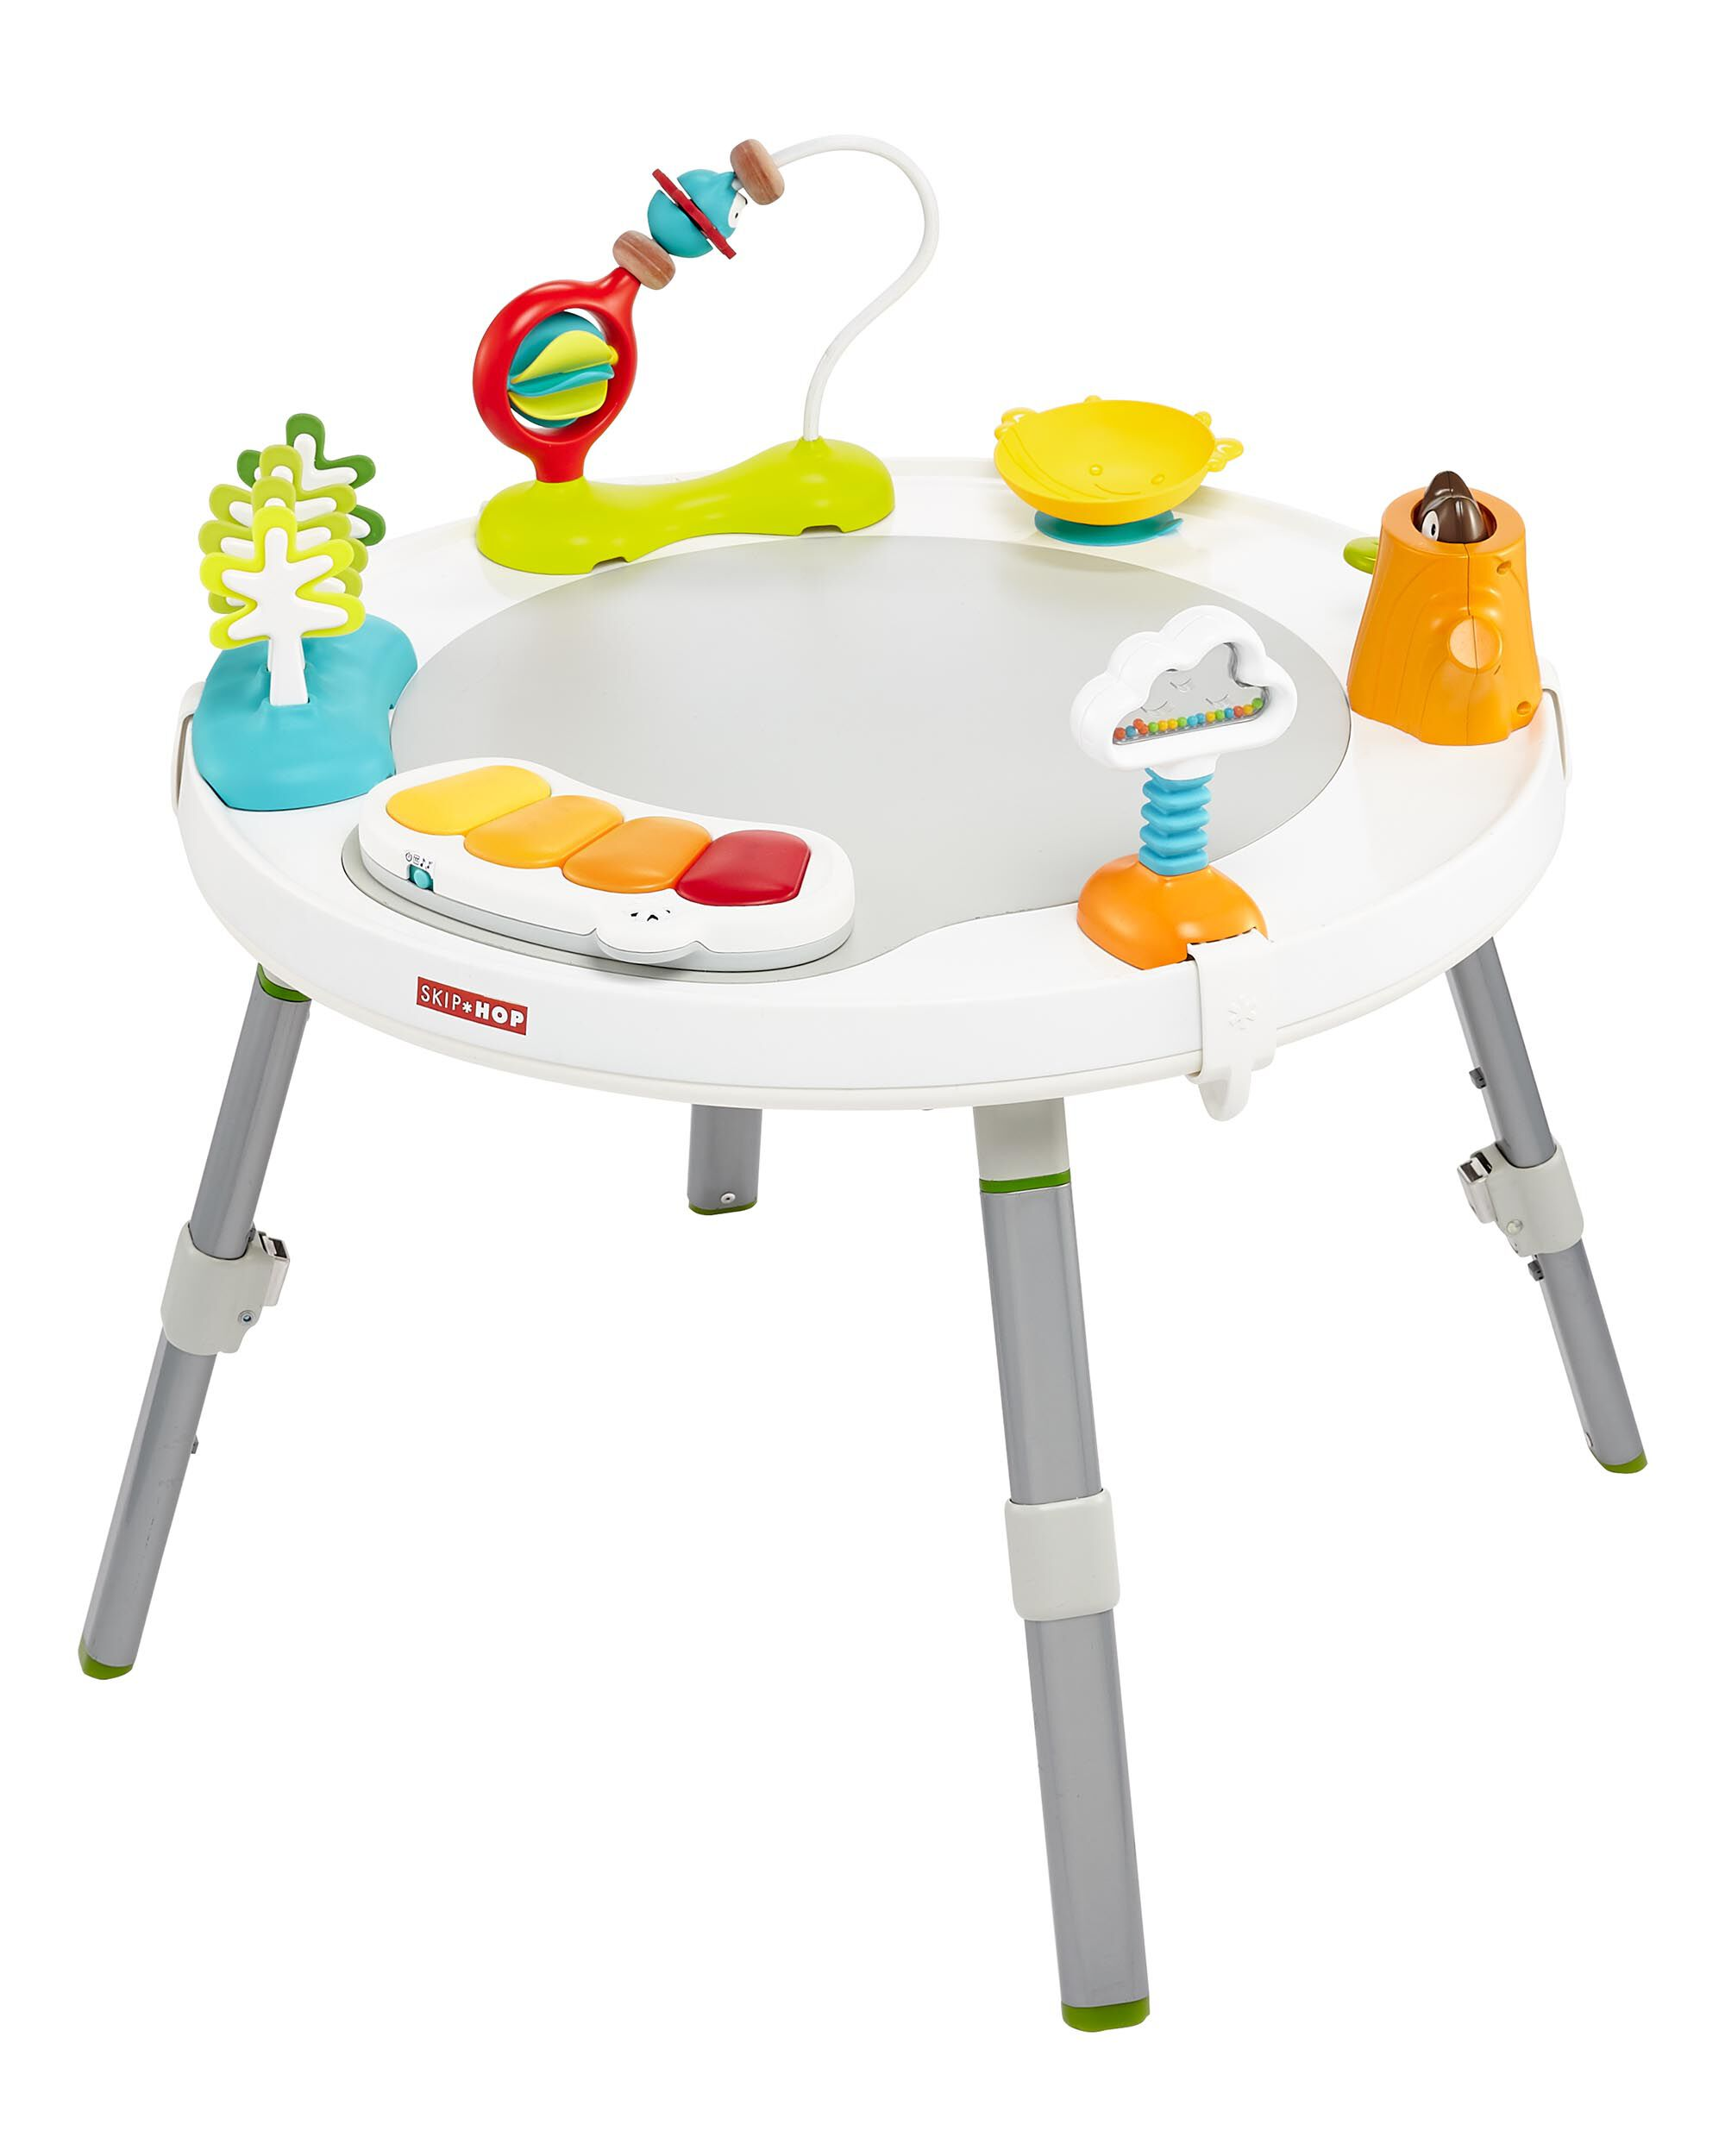 Explore Amp More Baby S View 3 Stage Activity Center